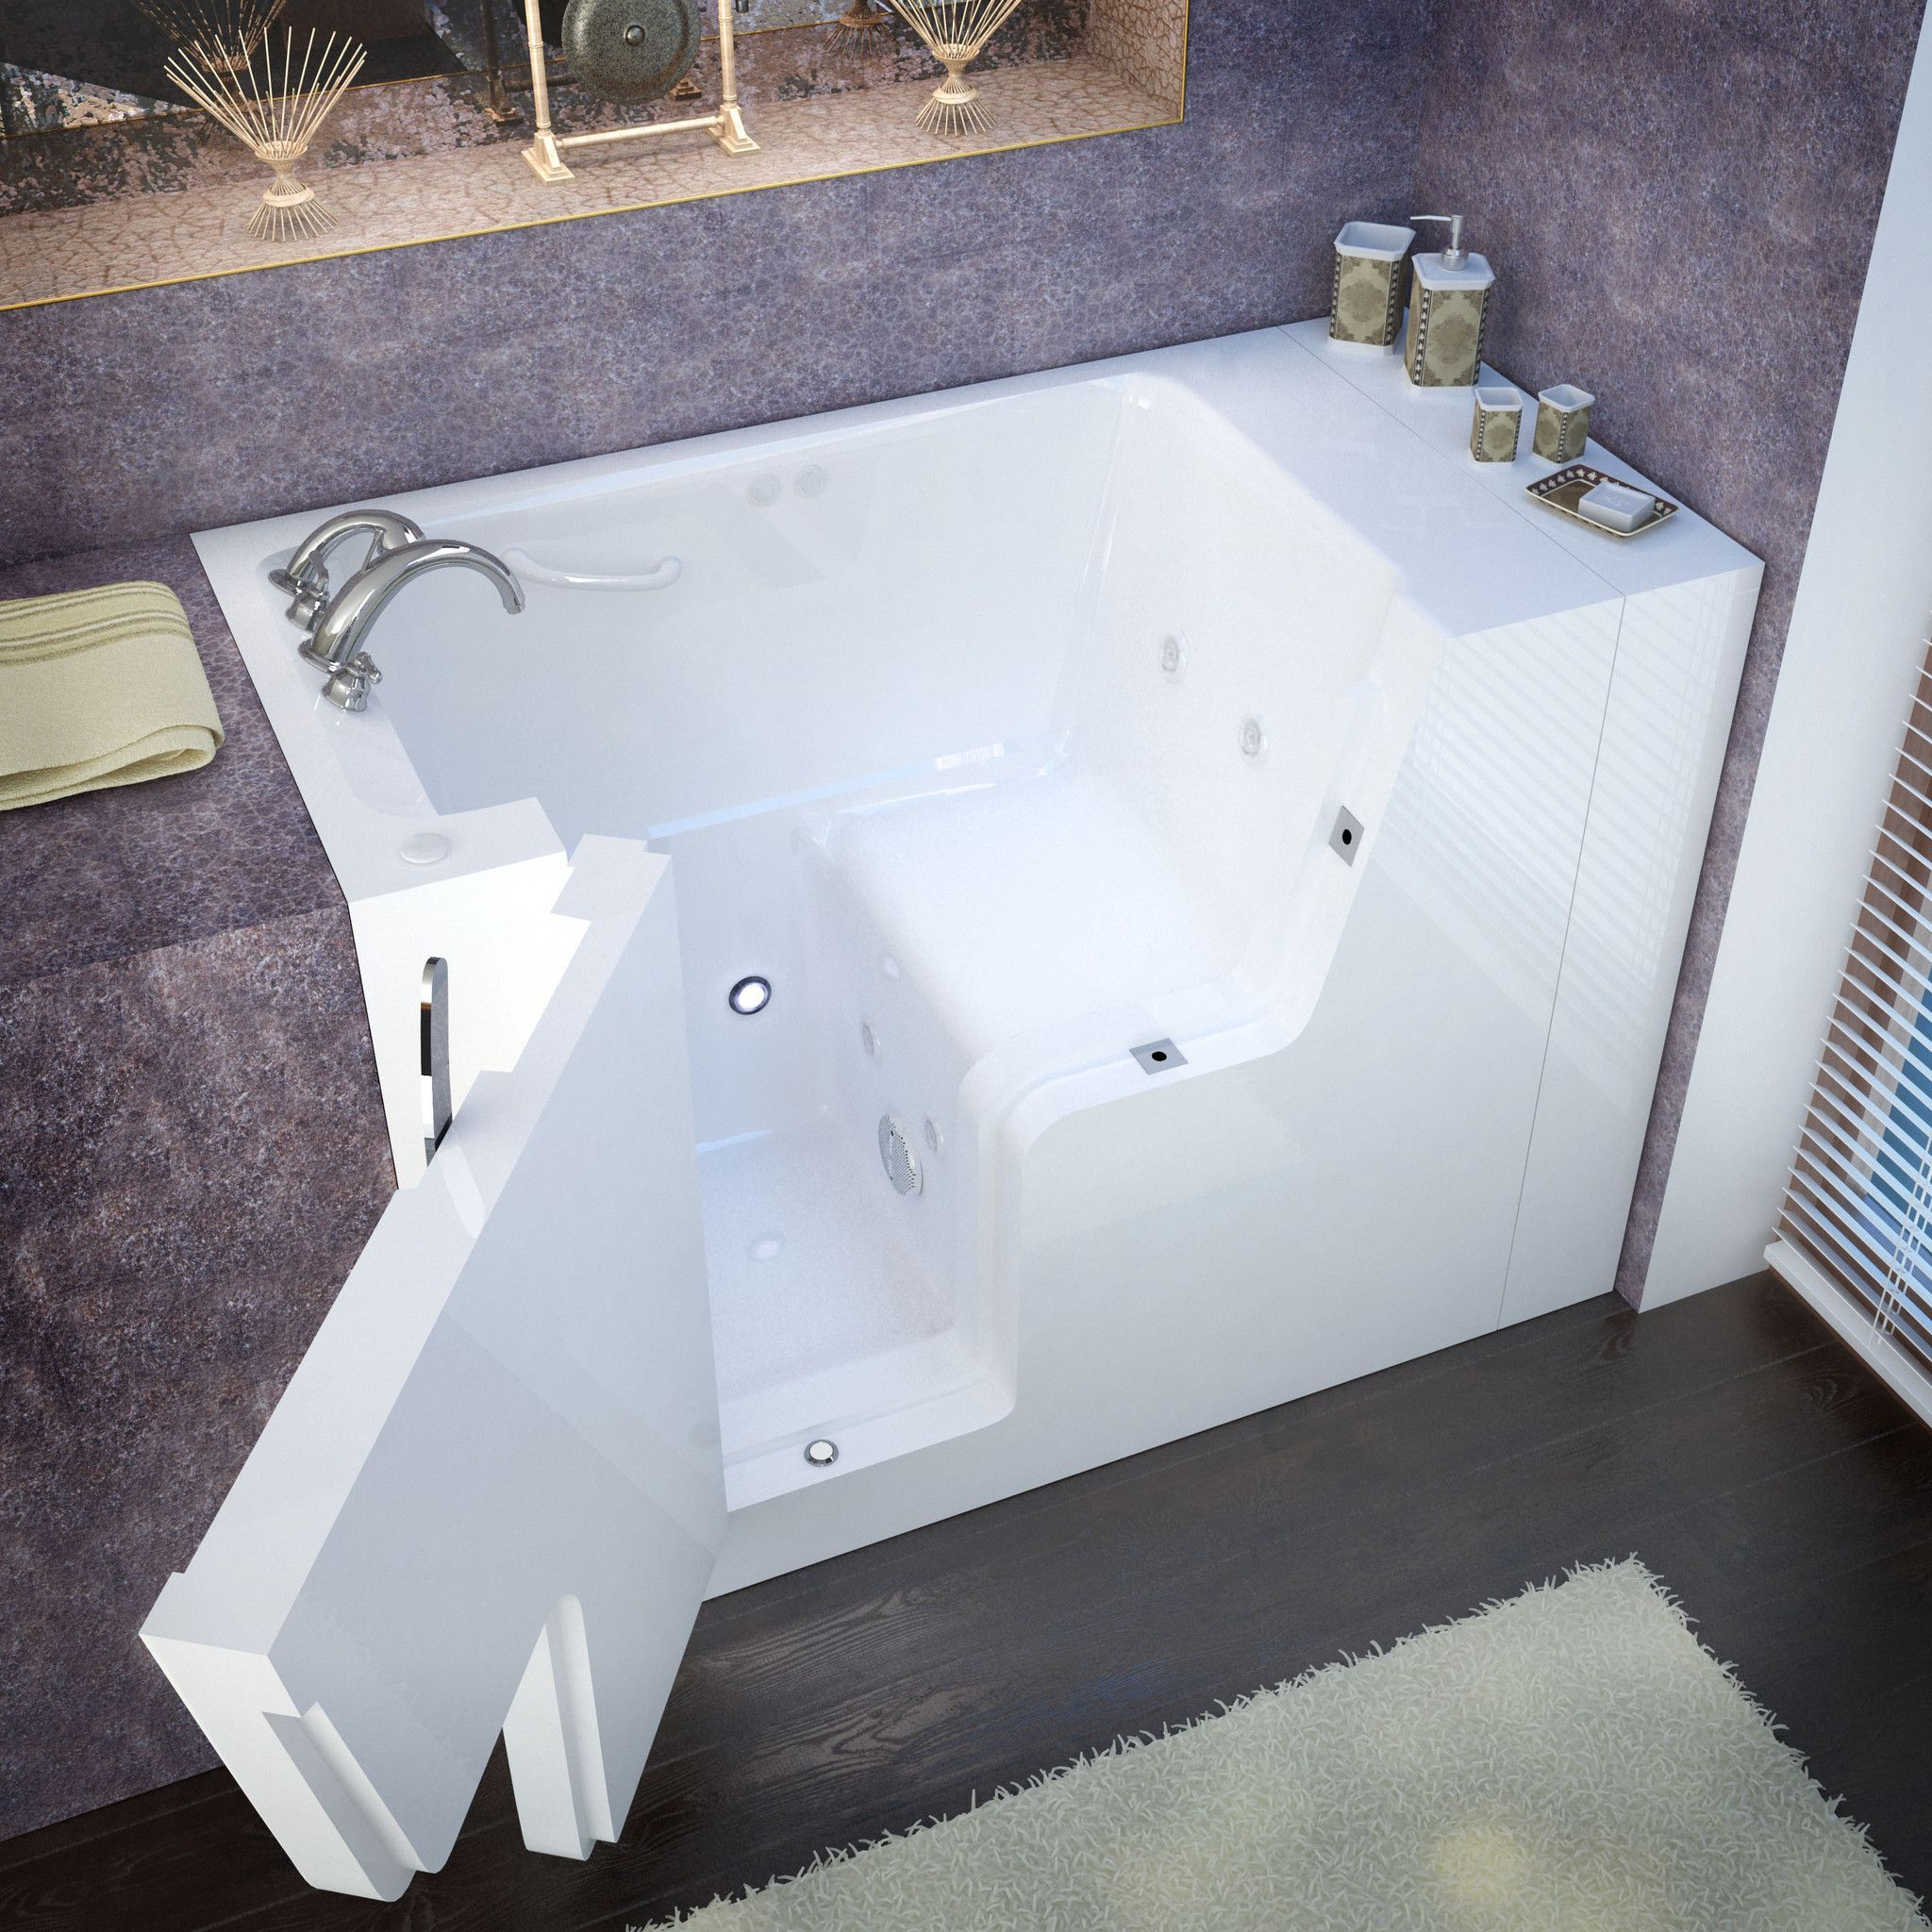 Venzi VZ2953WCALWH 29x53 Left Drain White Whirlpool Jetted ...